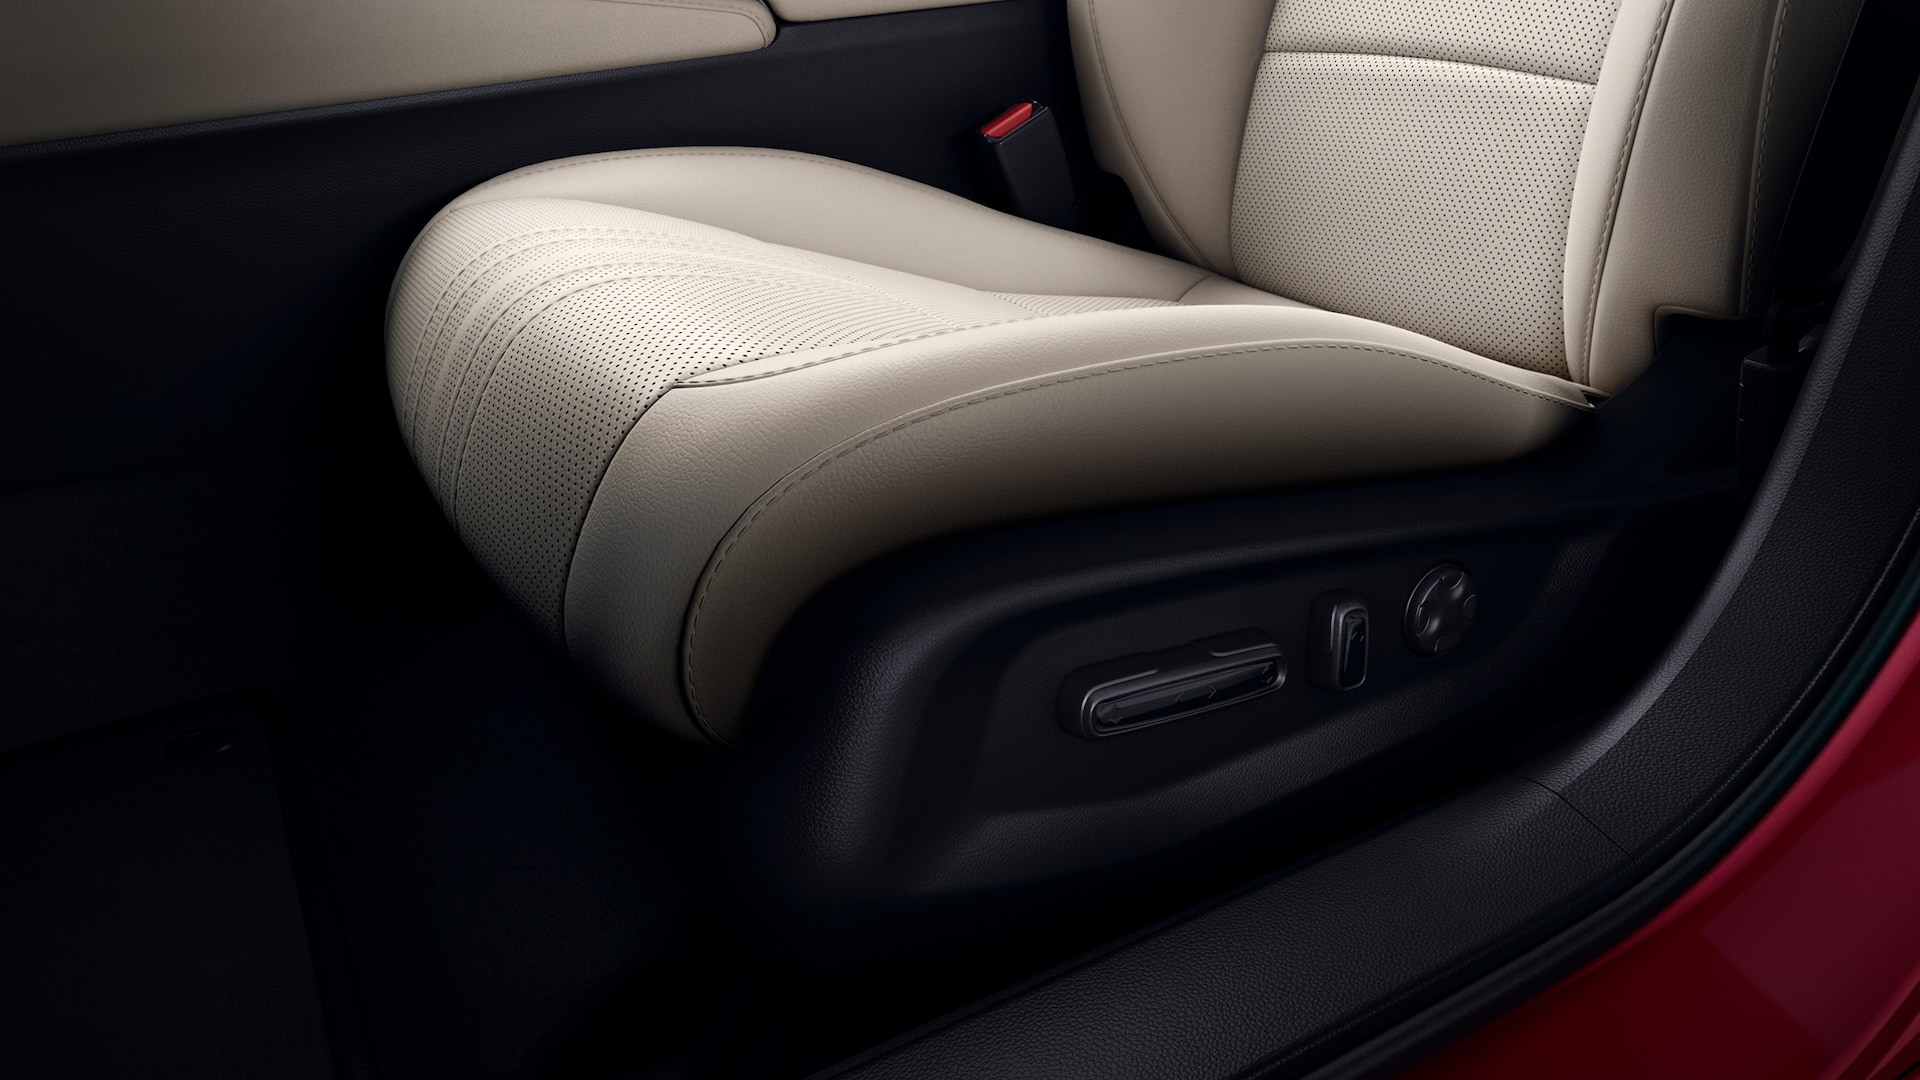 Driver's seat power-adjustable controls detail in the 2020 Honda Accord Touring 2.0T with Ivory Leather.